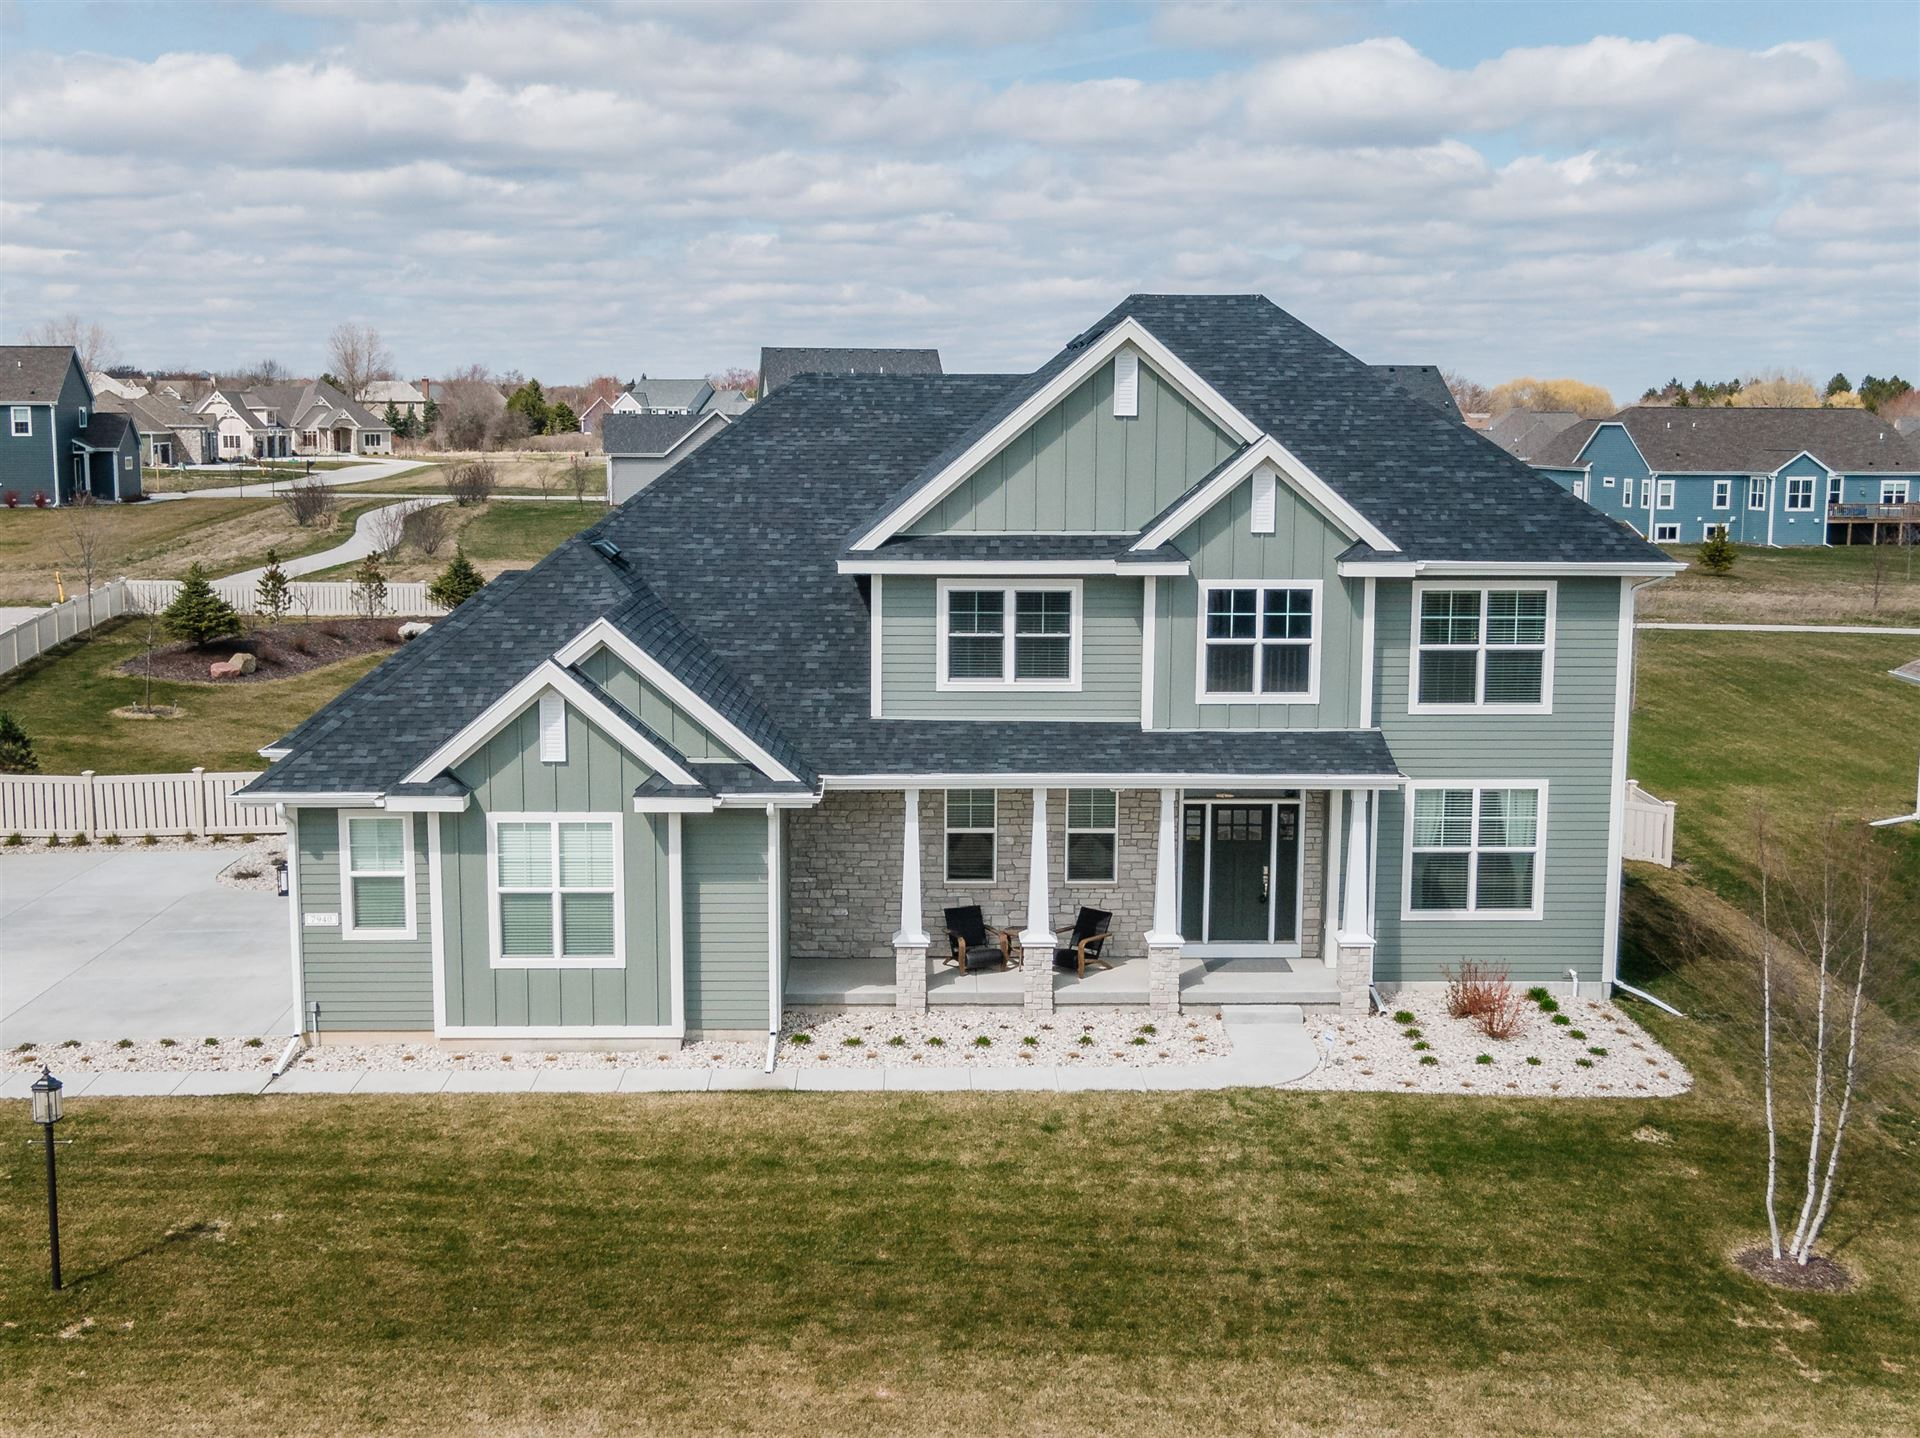 7940 W Mourning Dove Ln, Mequon, WI 53097 - #: 1683881